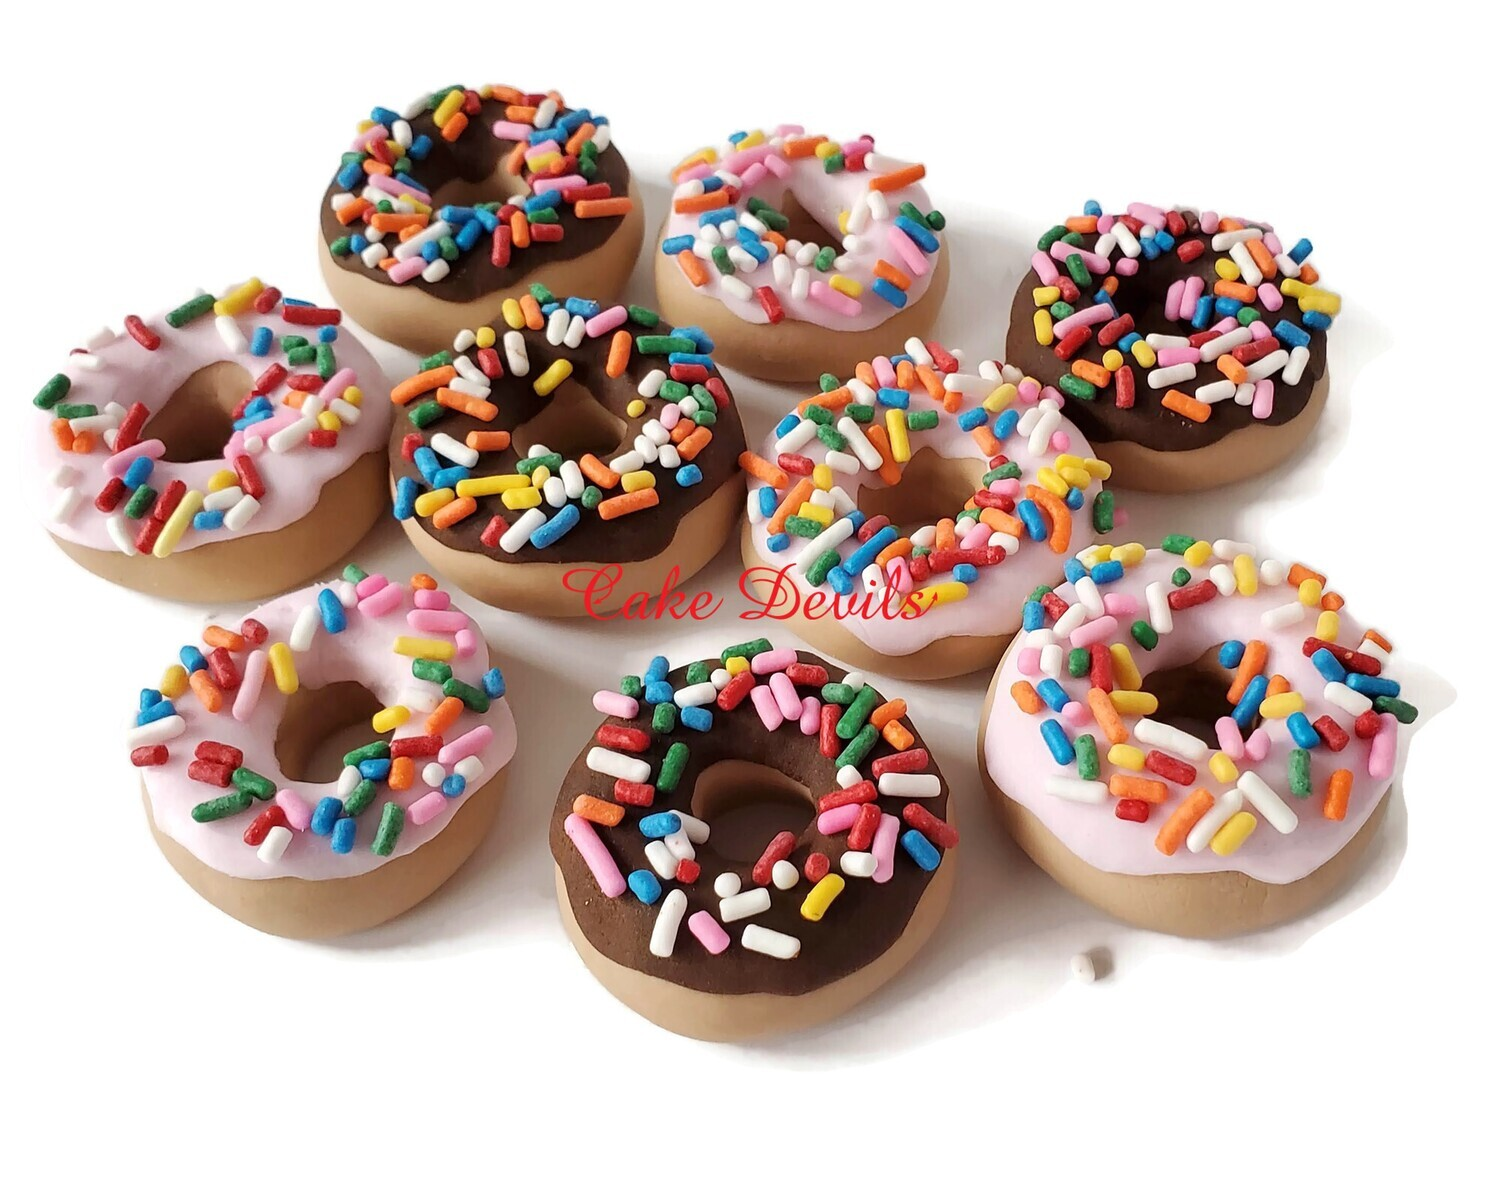 Fondant Donut Cupcake Toppers with Sprinkles and Doughnut Cake Decorations